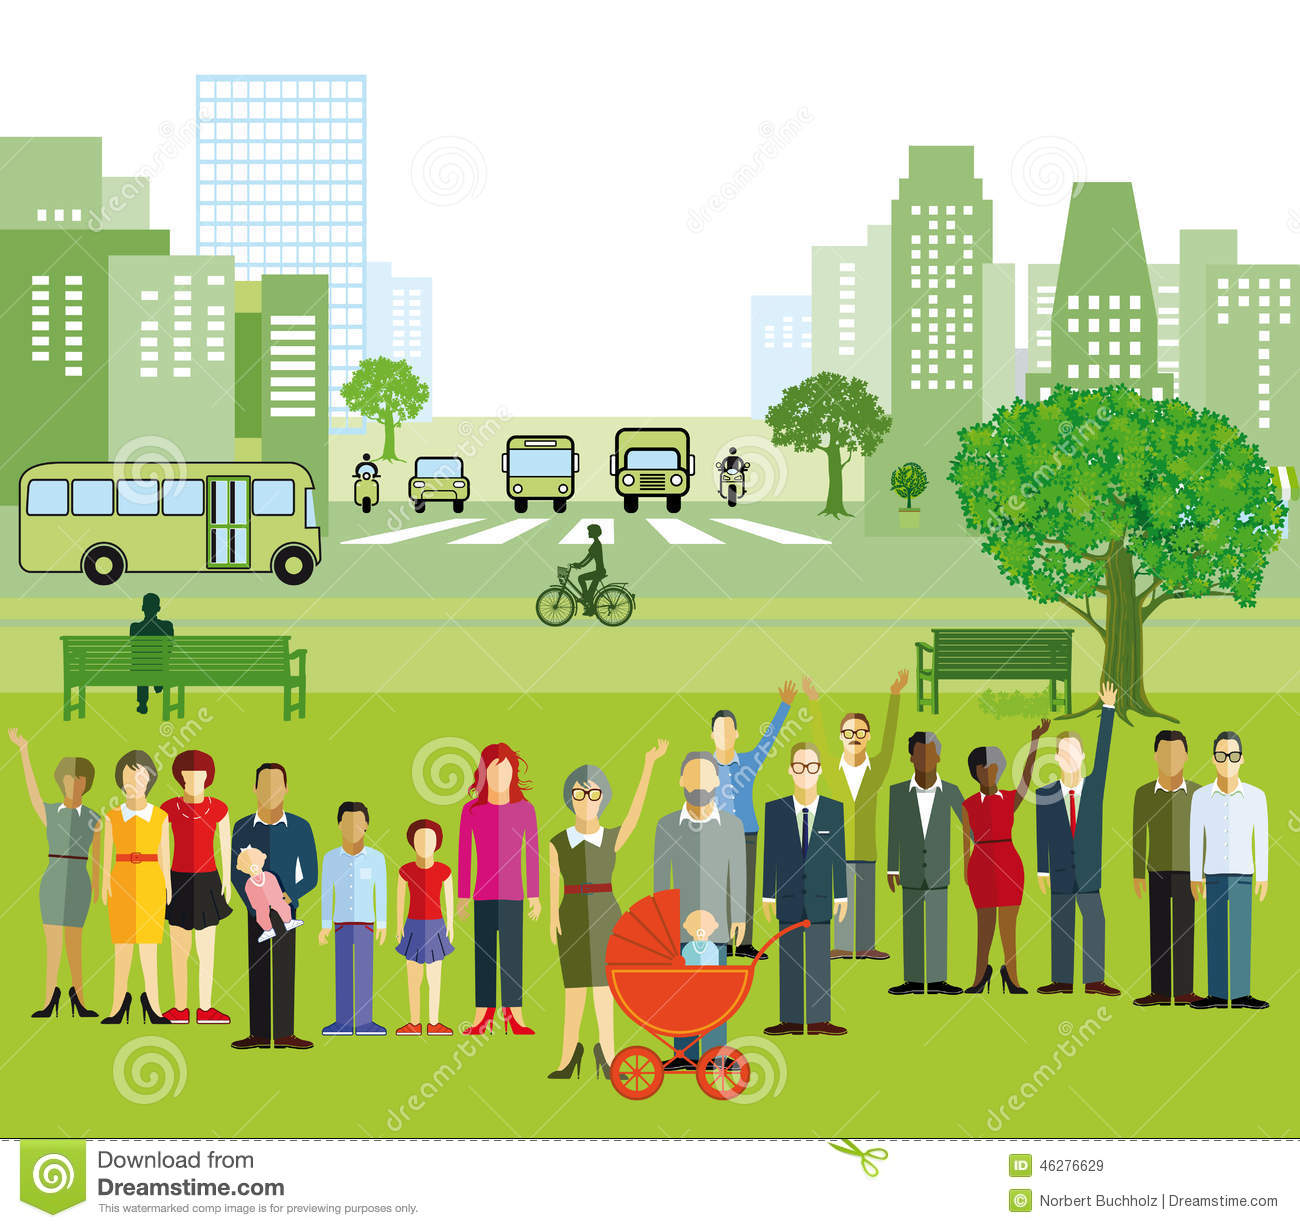 Illustration Of City And People Stock Photo - Image: 46276629